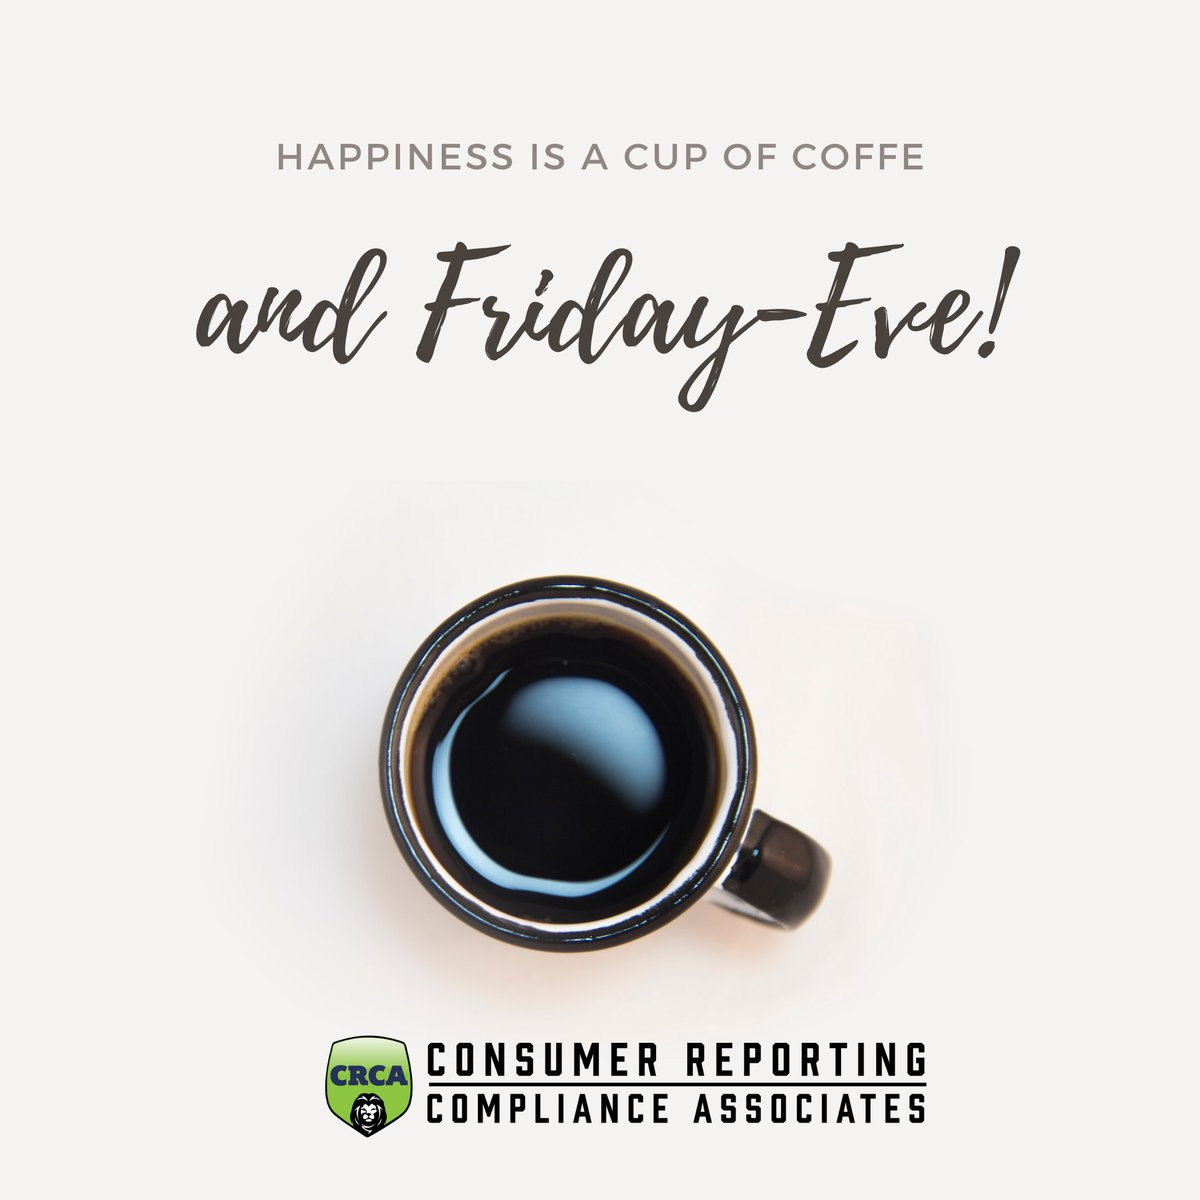 Friday-Eve and Coffee makes for a happy heart!  . . #hr #hrmeme #humanresources #coffee #coffeebreak #fridayeve #crcapic.twitter.com/jCebbqZh4o